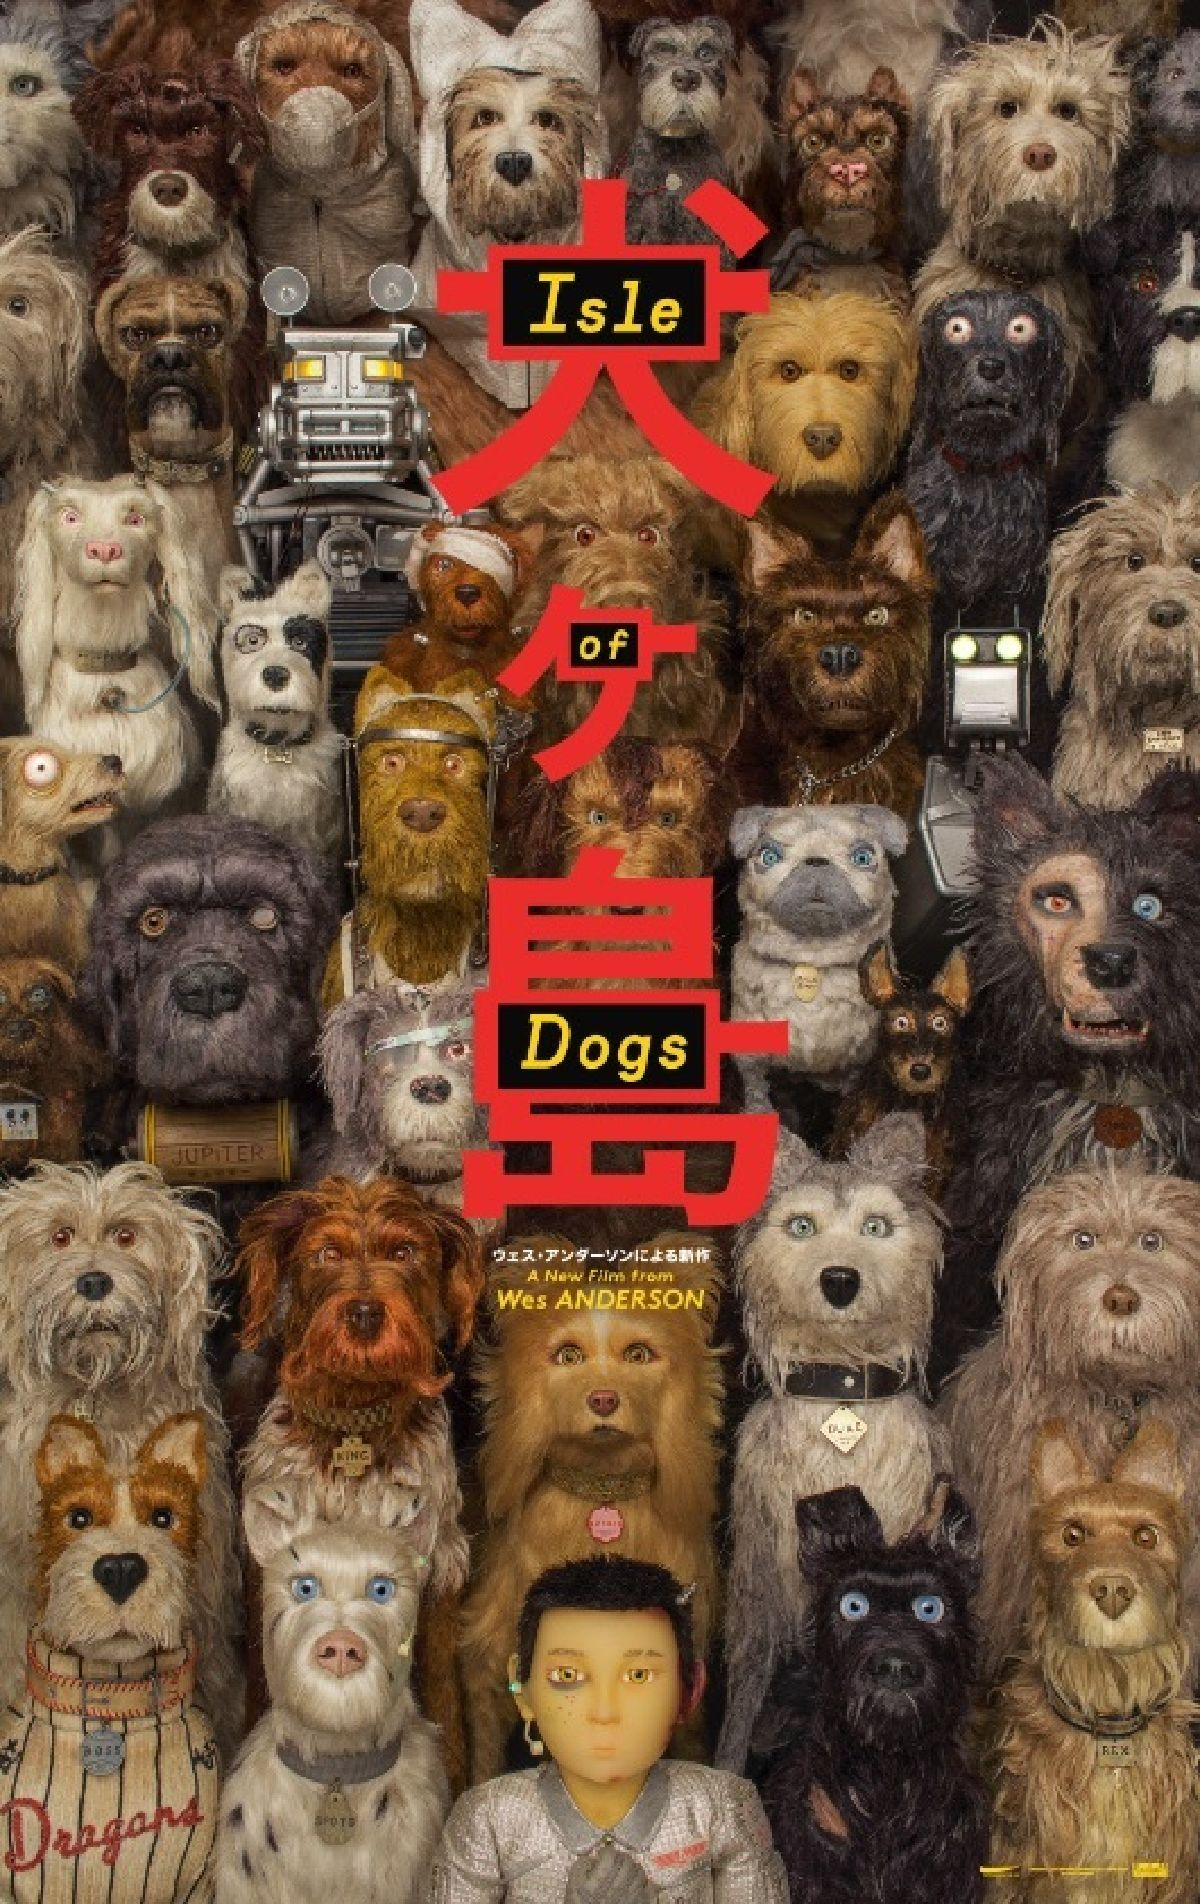 'Isle of Dogs' movie poster